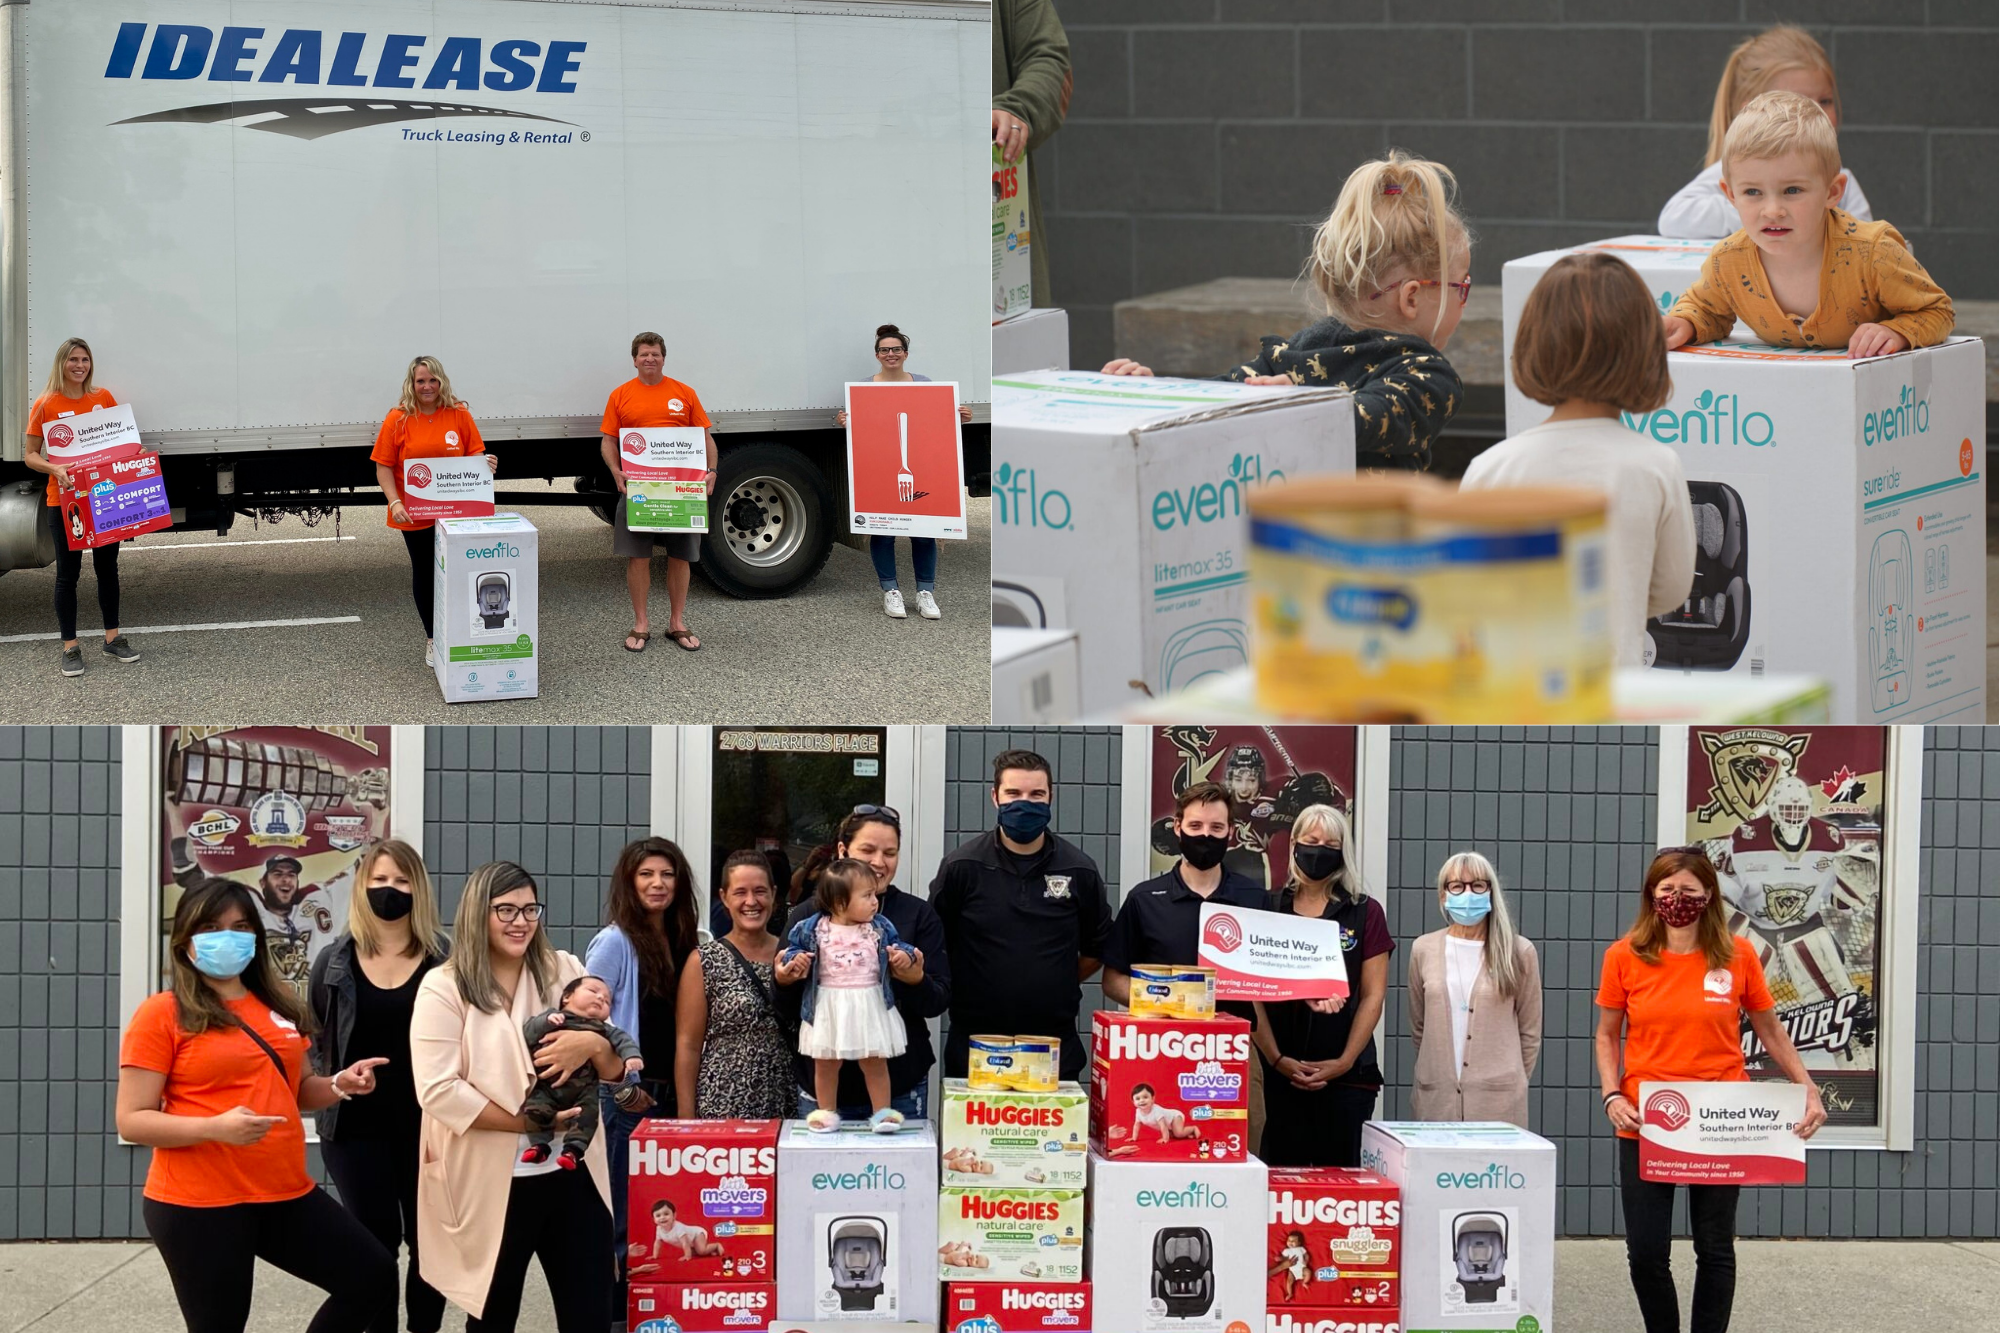 A collage of three images. At top left, 4 people hold signs and child safety products in front of a large panel truck. At top right, several young children stand or sit around boxes of carseats. At bottom, a large group of people hold signs and smile behind a large pile of boxes of child safety items.